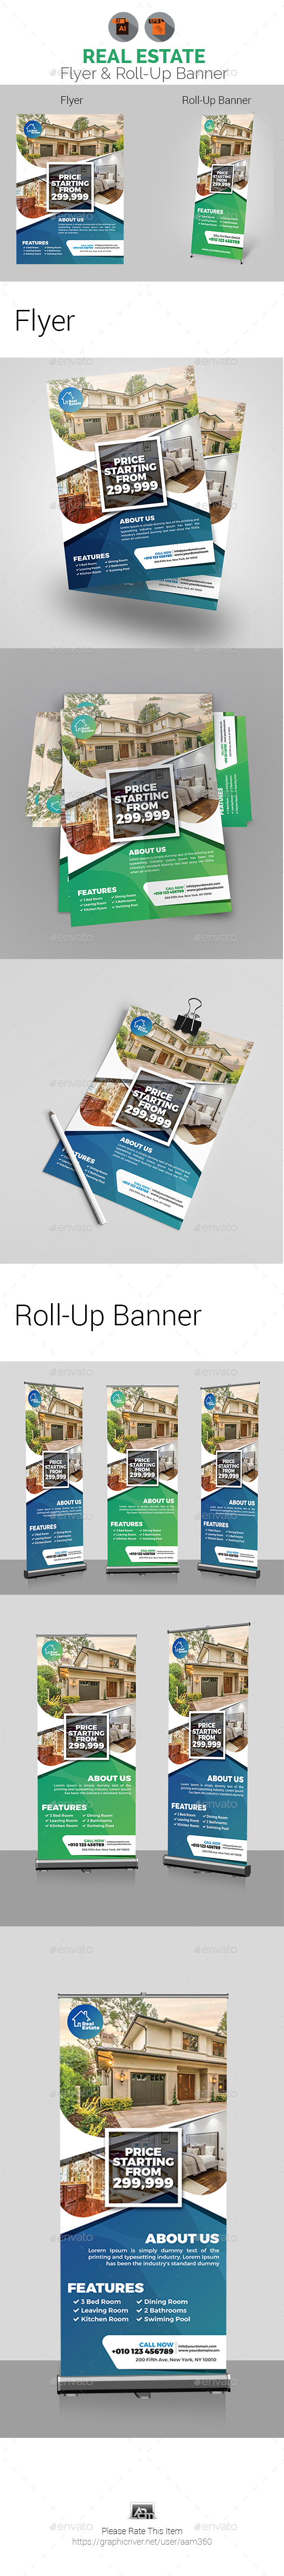 Real Estate Flyer & Roll-Up Banner Bundle